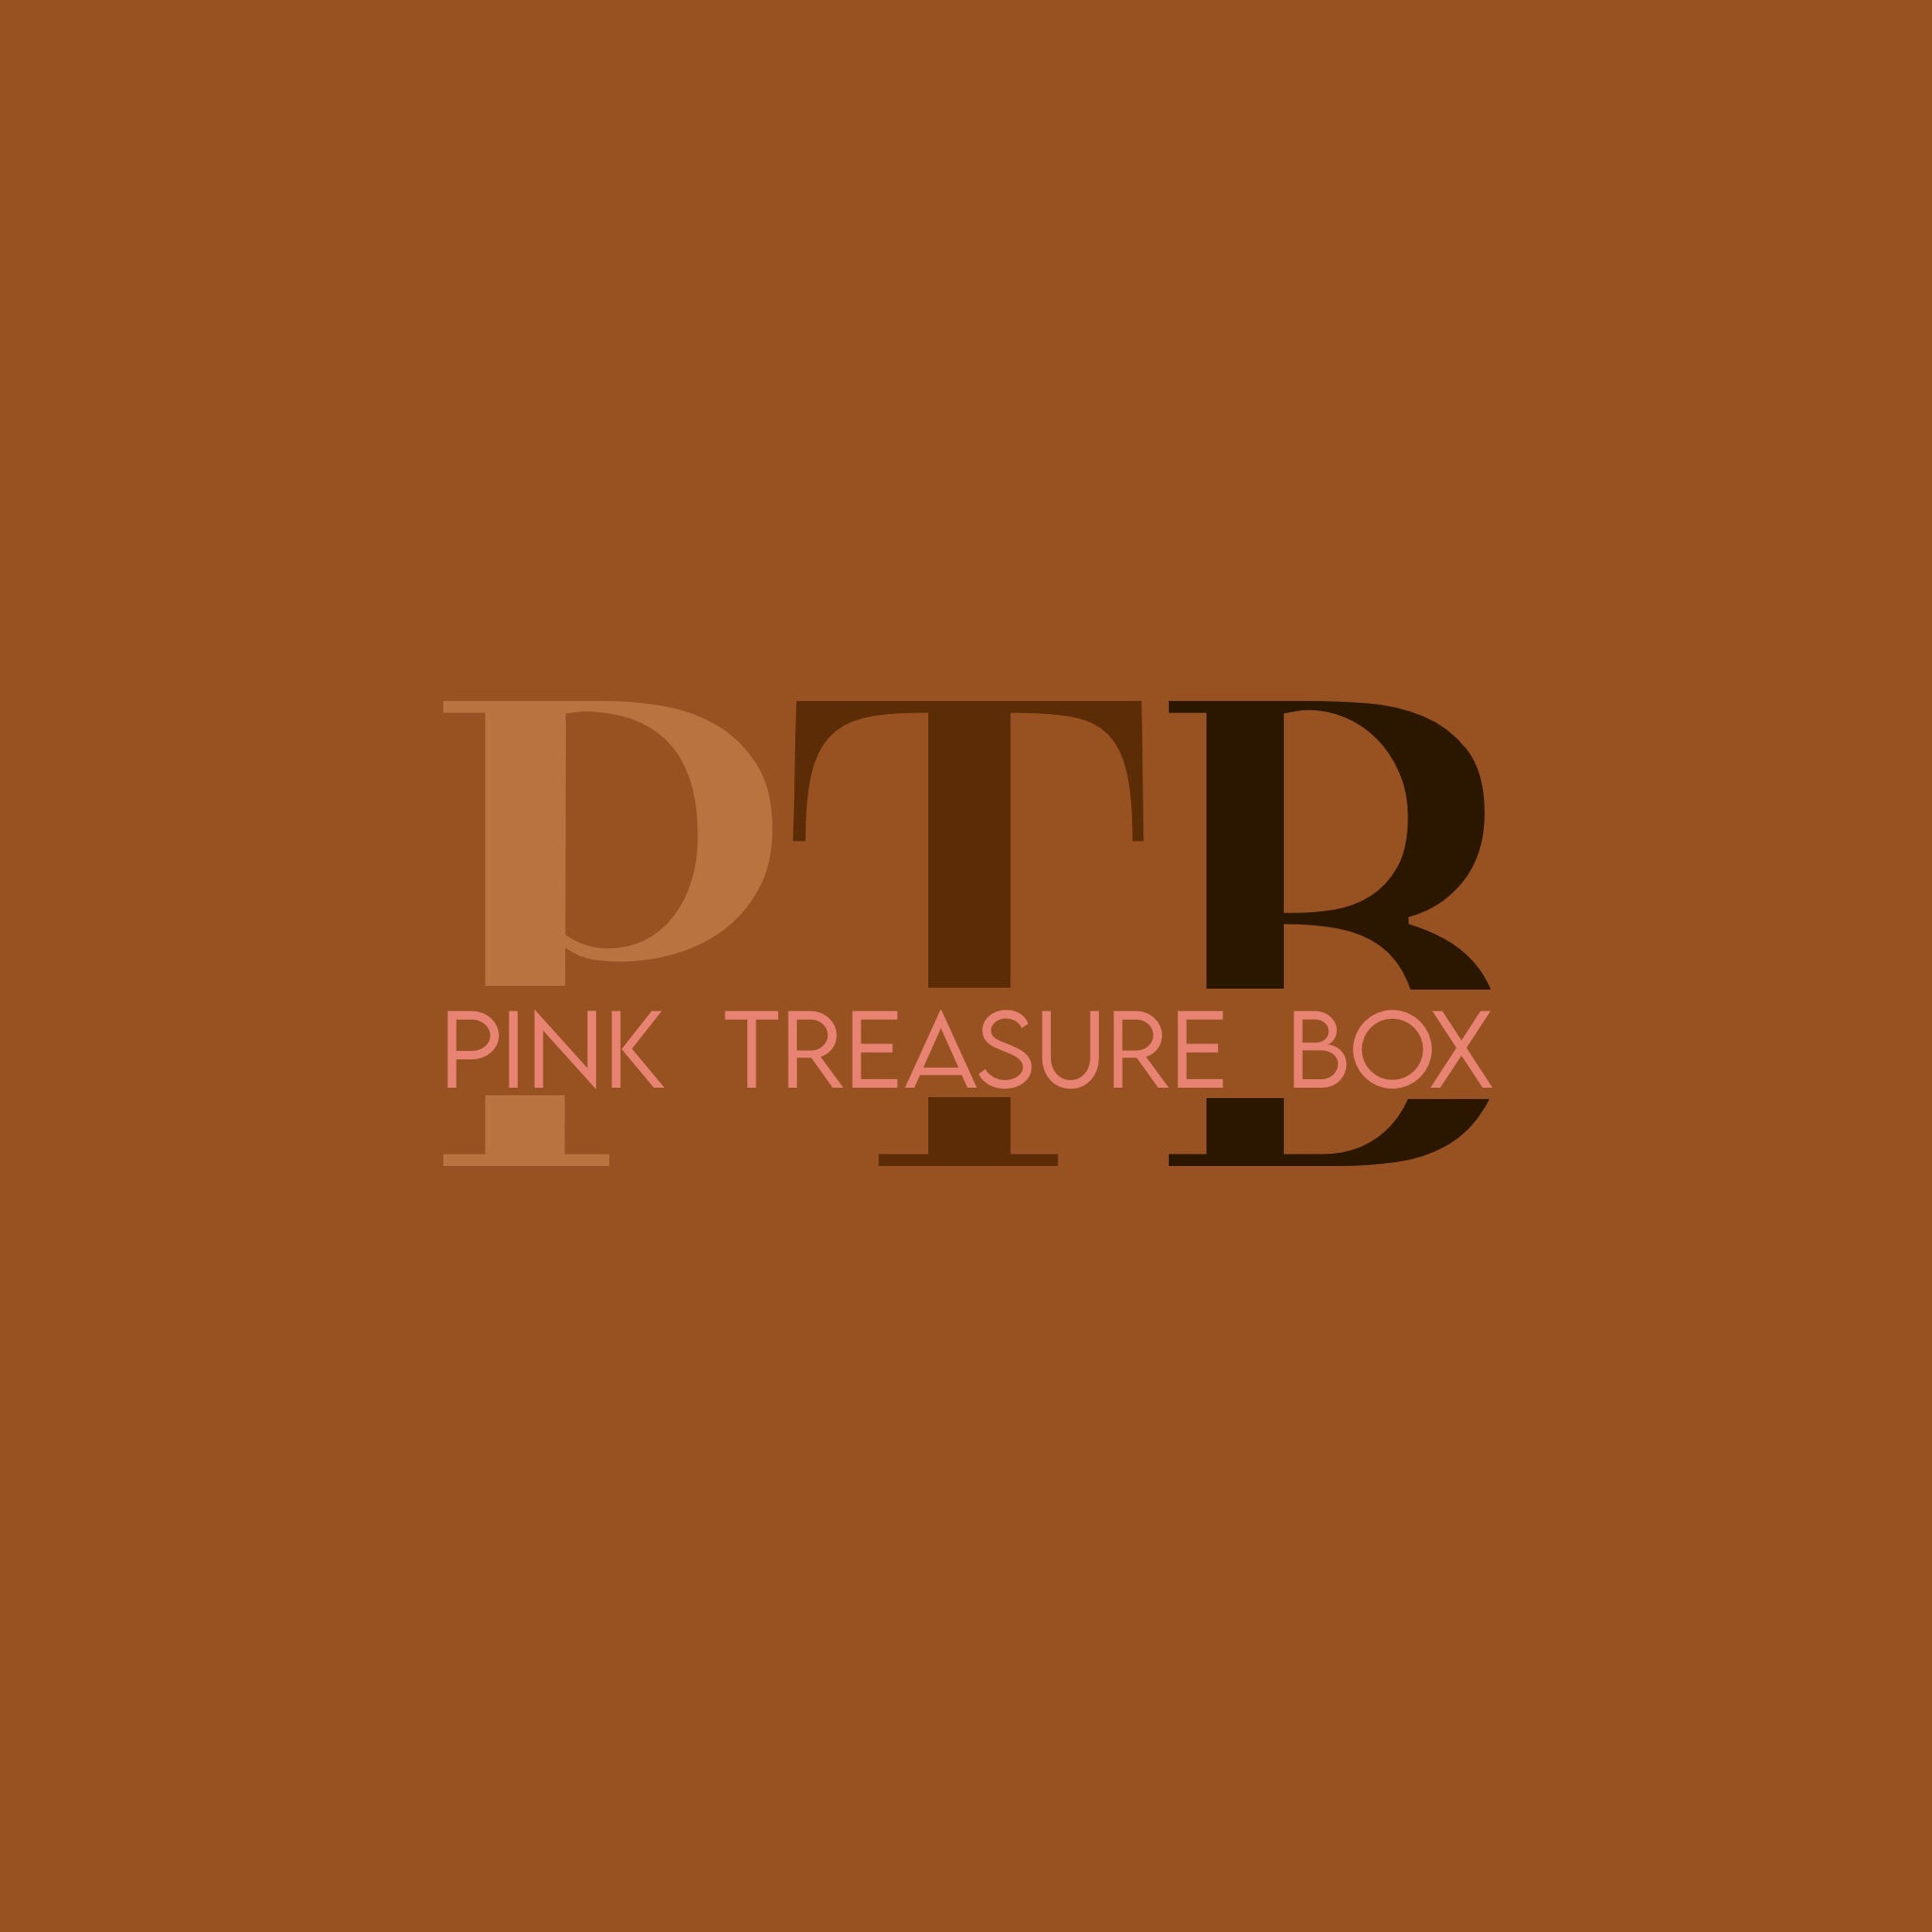 Pink Treasure Box